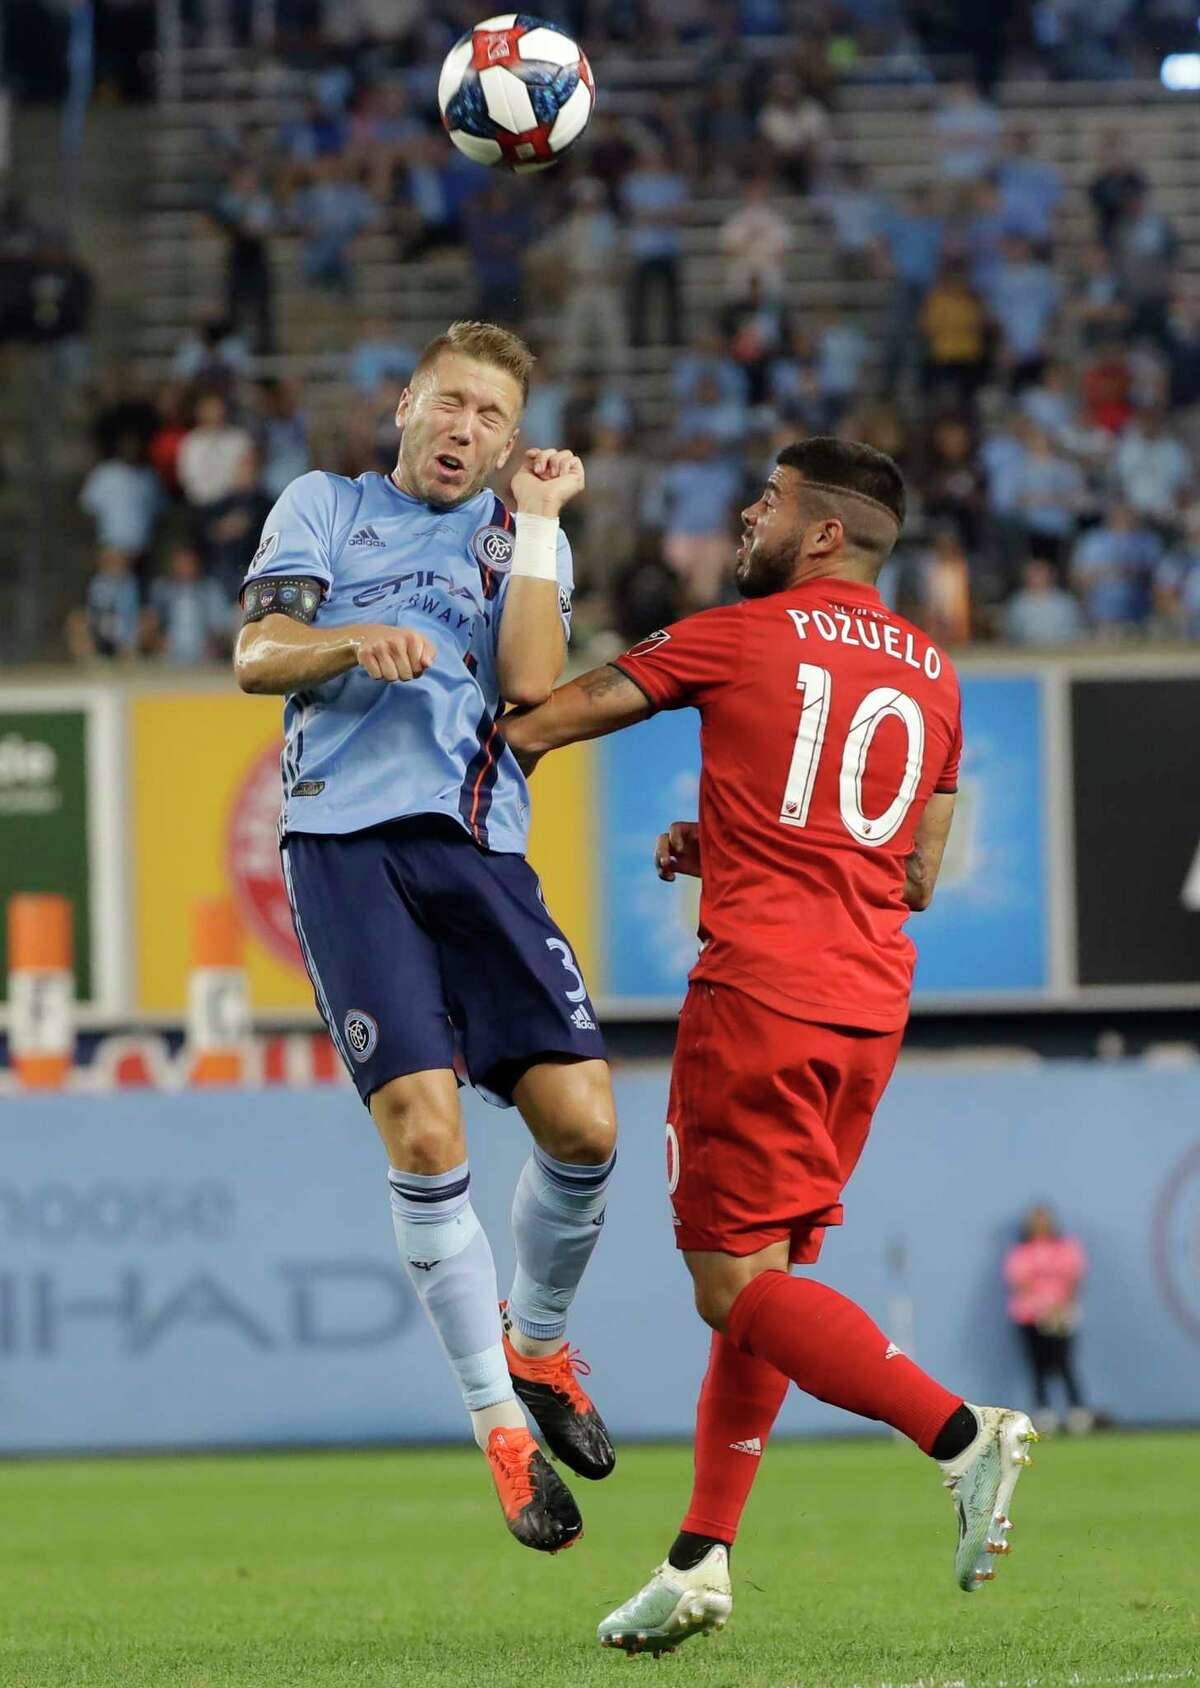 New York City FC's Anton Tinnerholm, left, heads the ball in front of Toronto FC's Alejandro Pozuelo during the first half of an MLS soccer match Wednesday, Sept. 11, 2019, in New York. (AP Photo/Frank Franklin II)